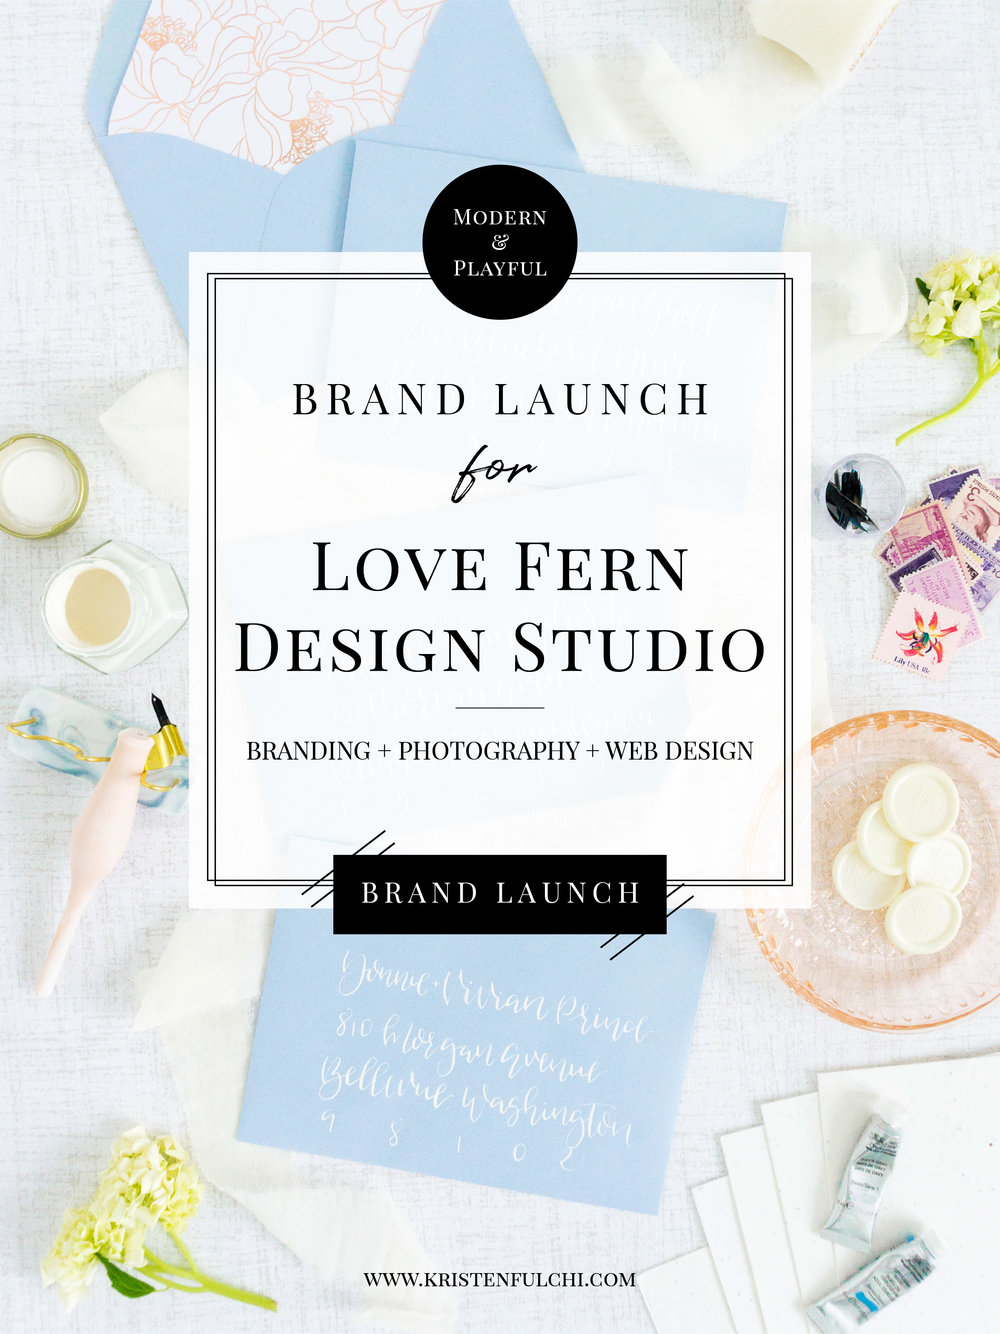 modern-and-playful-brand-launch-for-love-fern-design-stduio-branding-photography-and-web-design-for-creatives-miami-florida-01.jpg